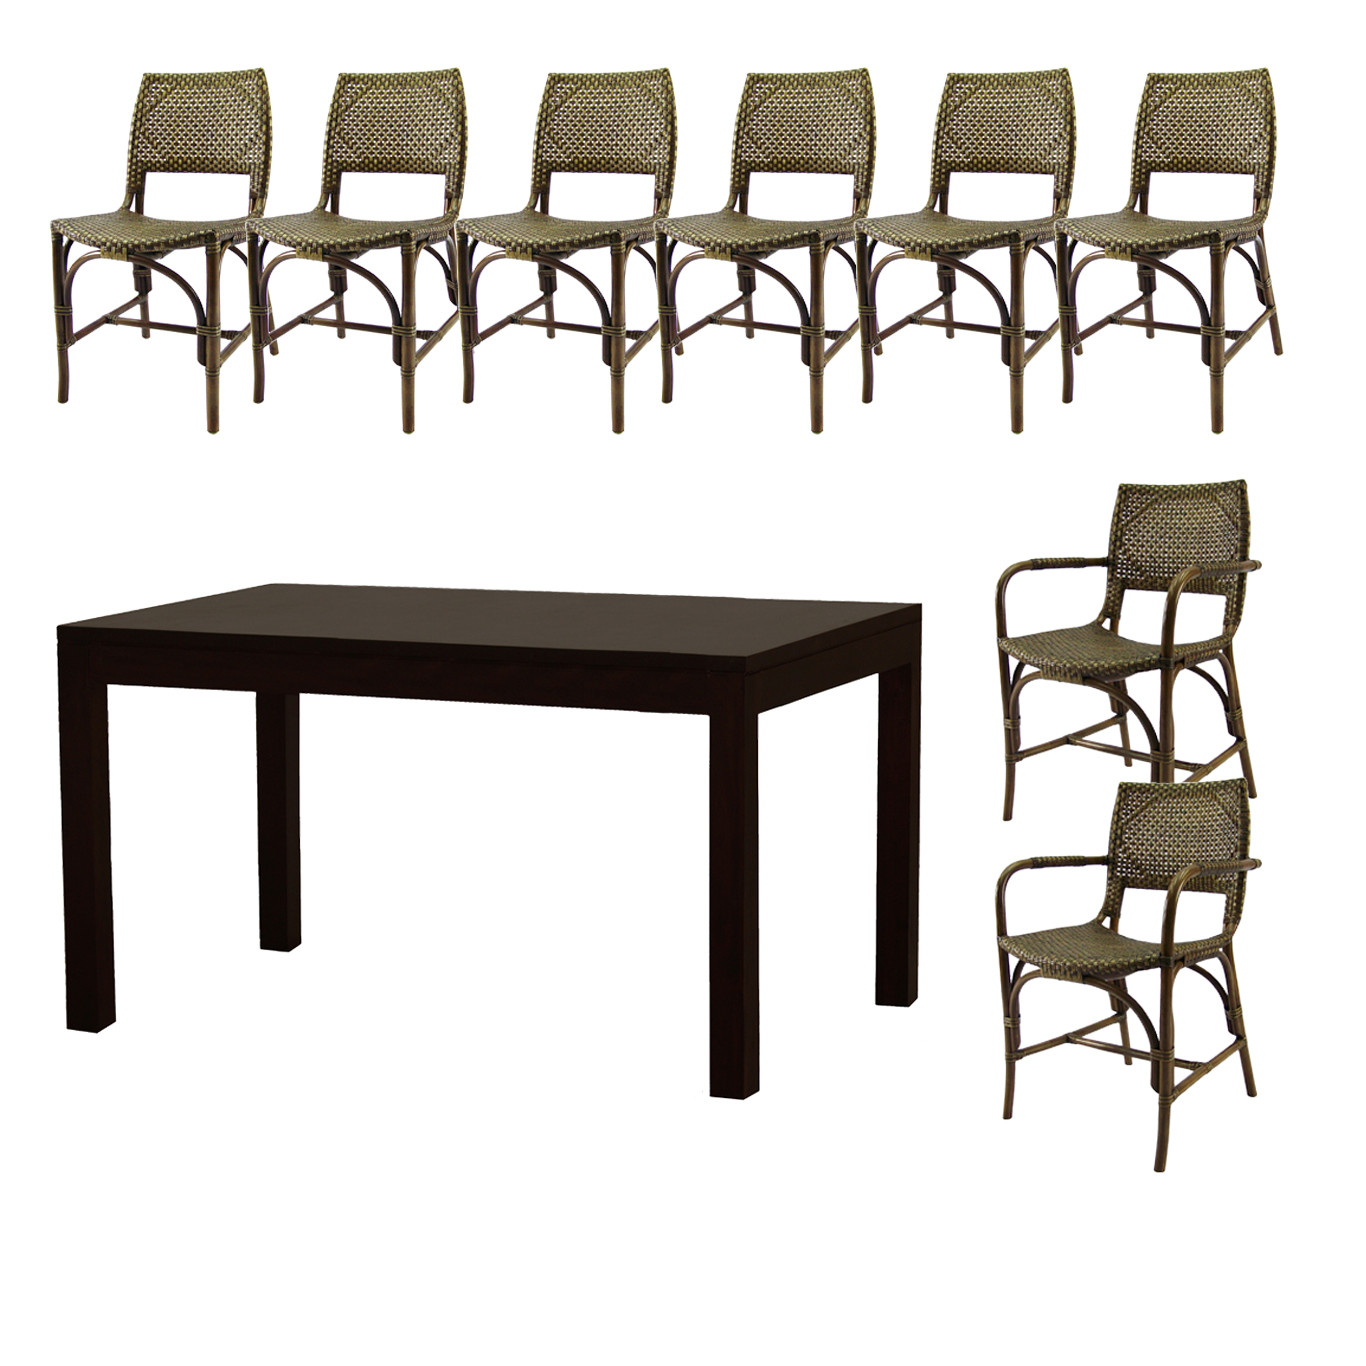 NEW Austin 2 Arm Chairs and 6 Dining Chairs Dining Set | eBay